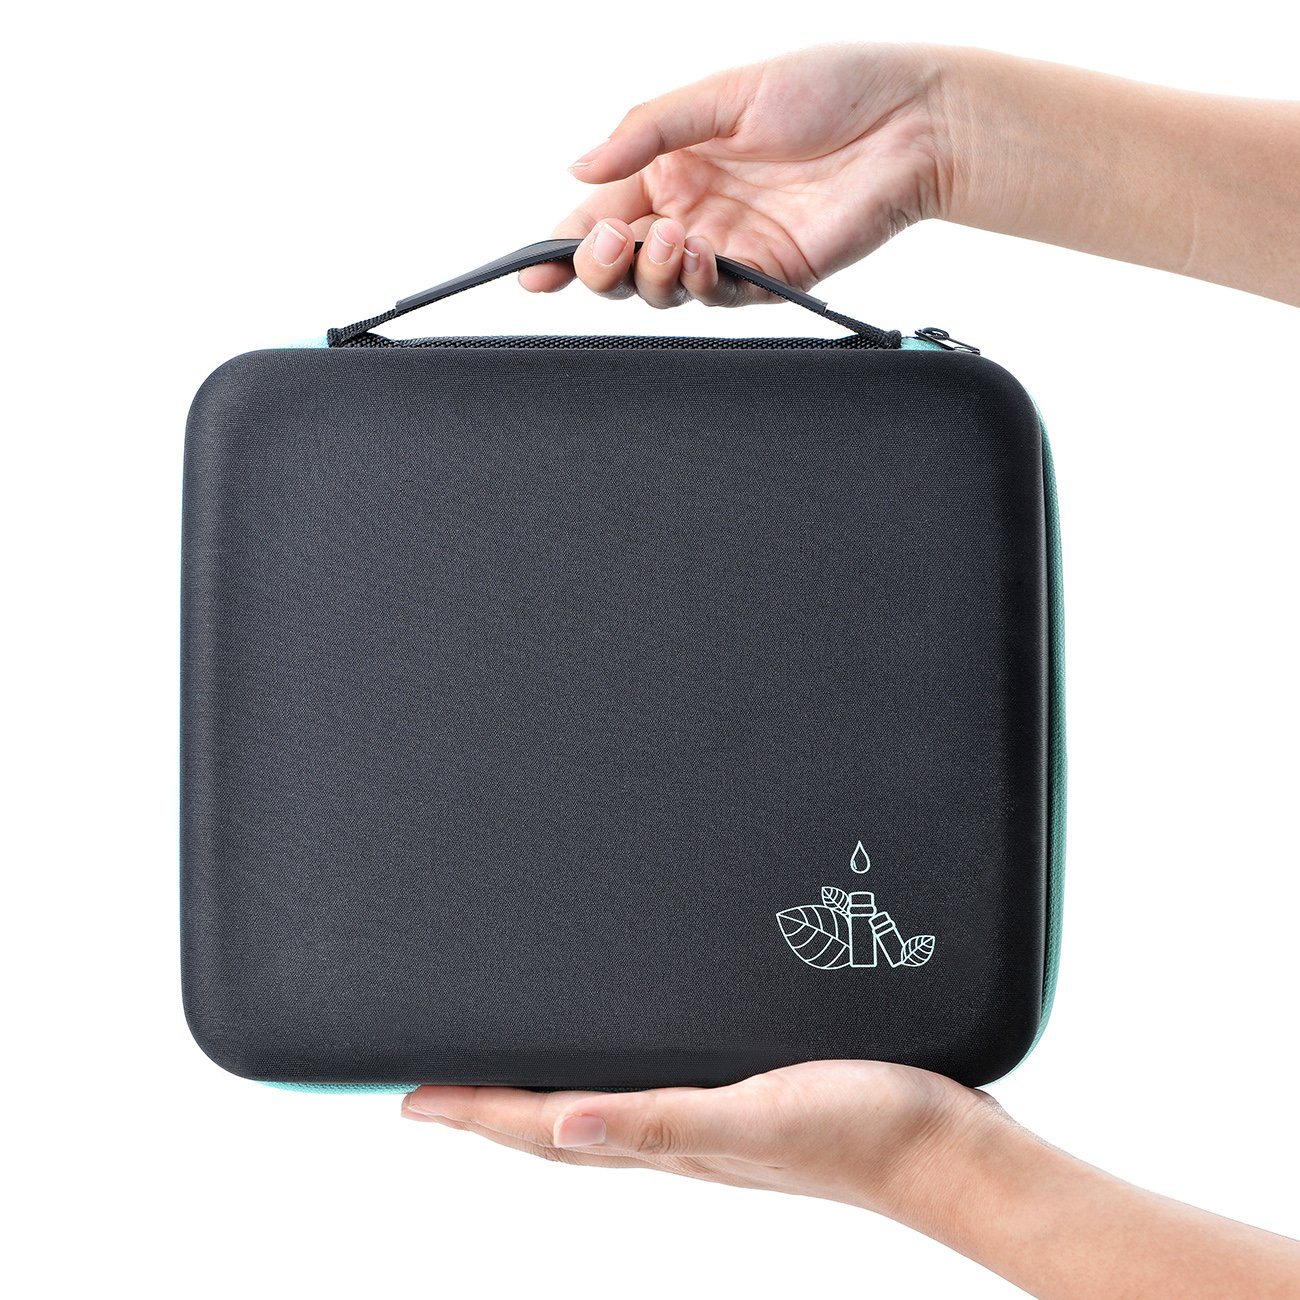 Carrying hard EVA case for essential Oils Featured Image